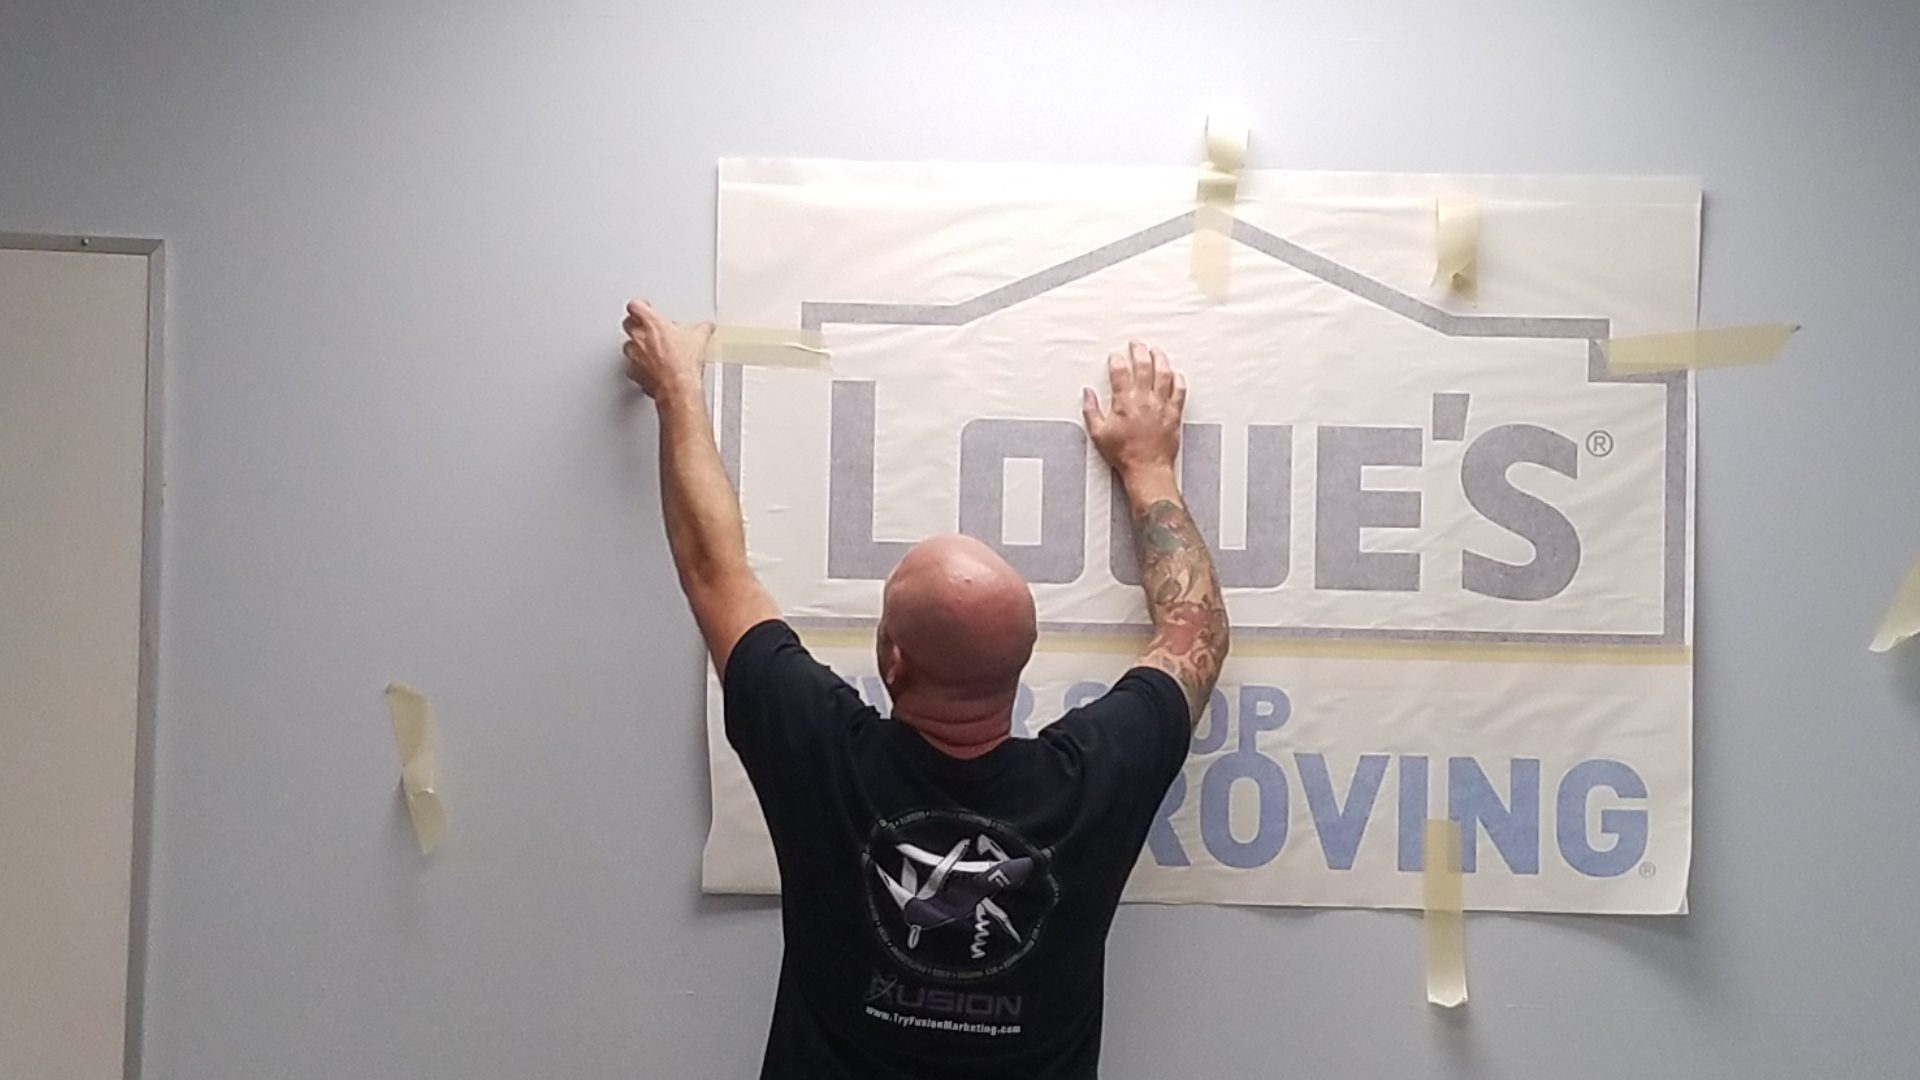 Lowes - Vinyl Wall Graphics (1)